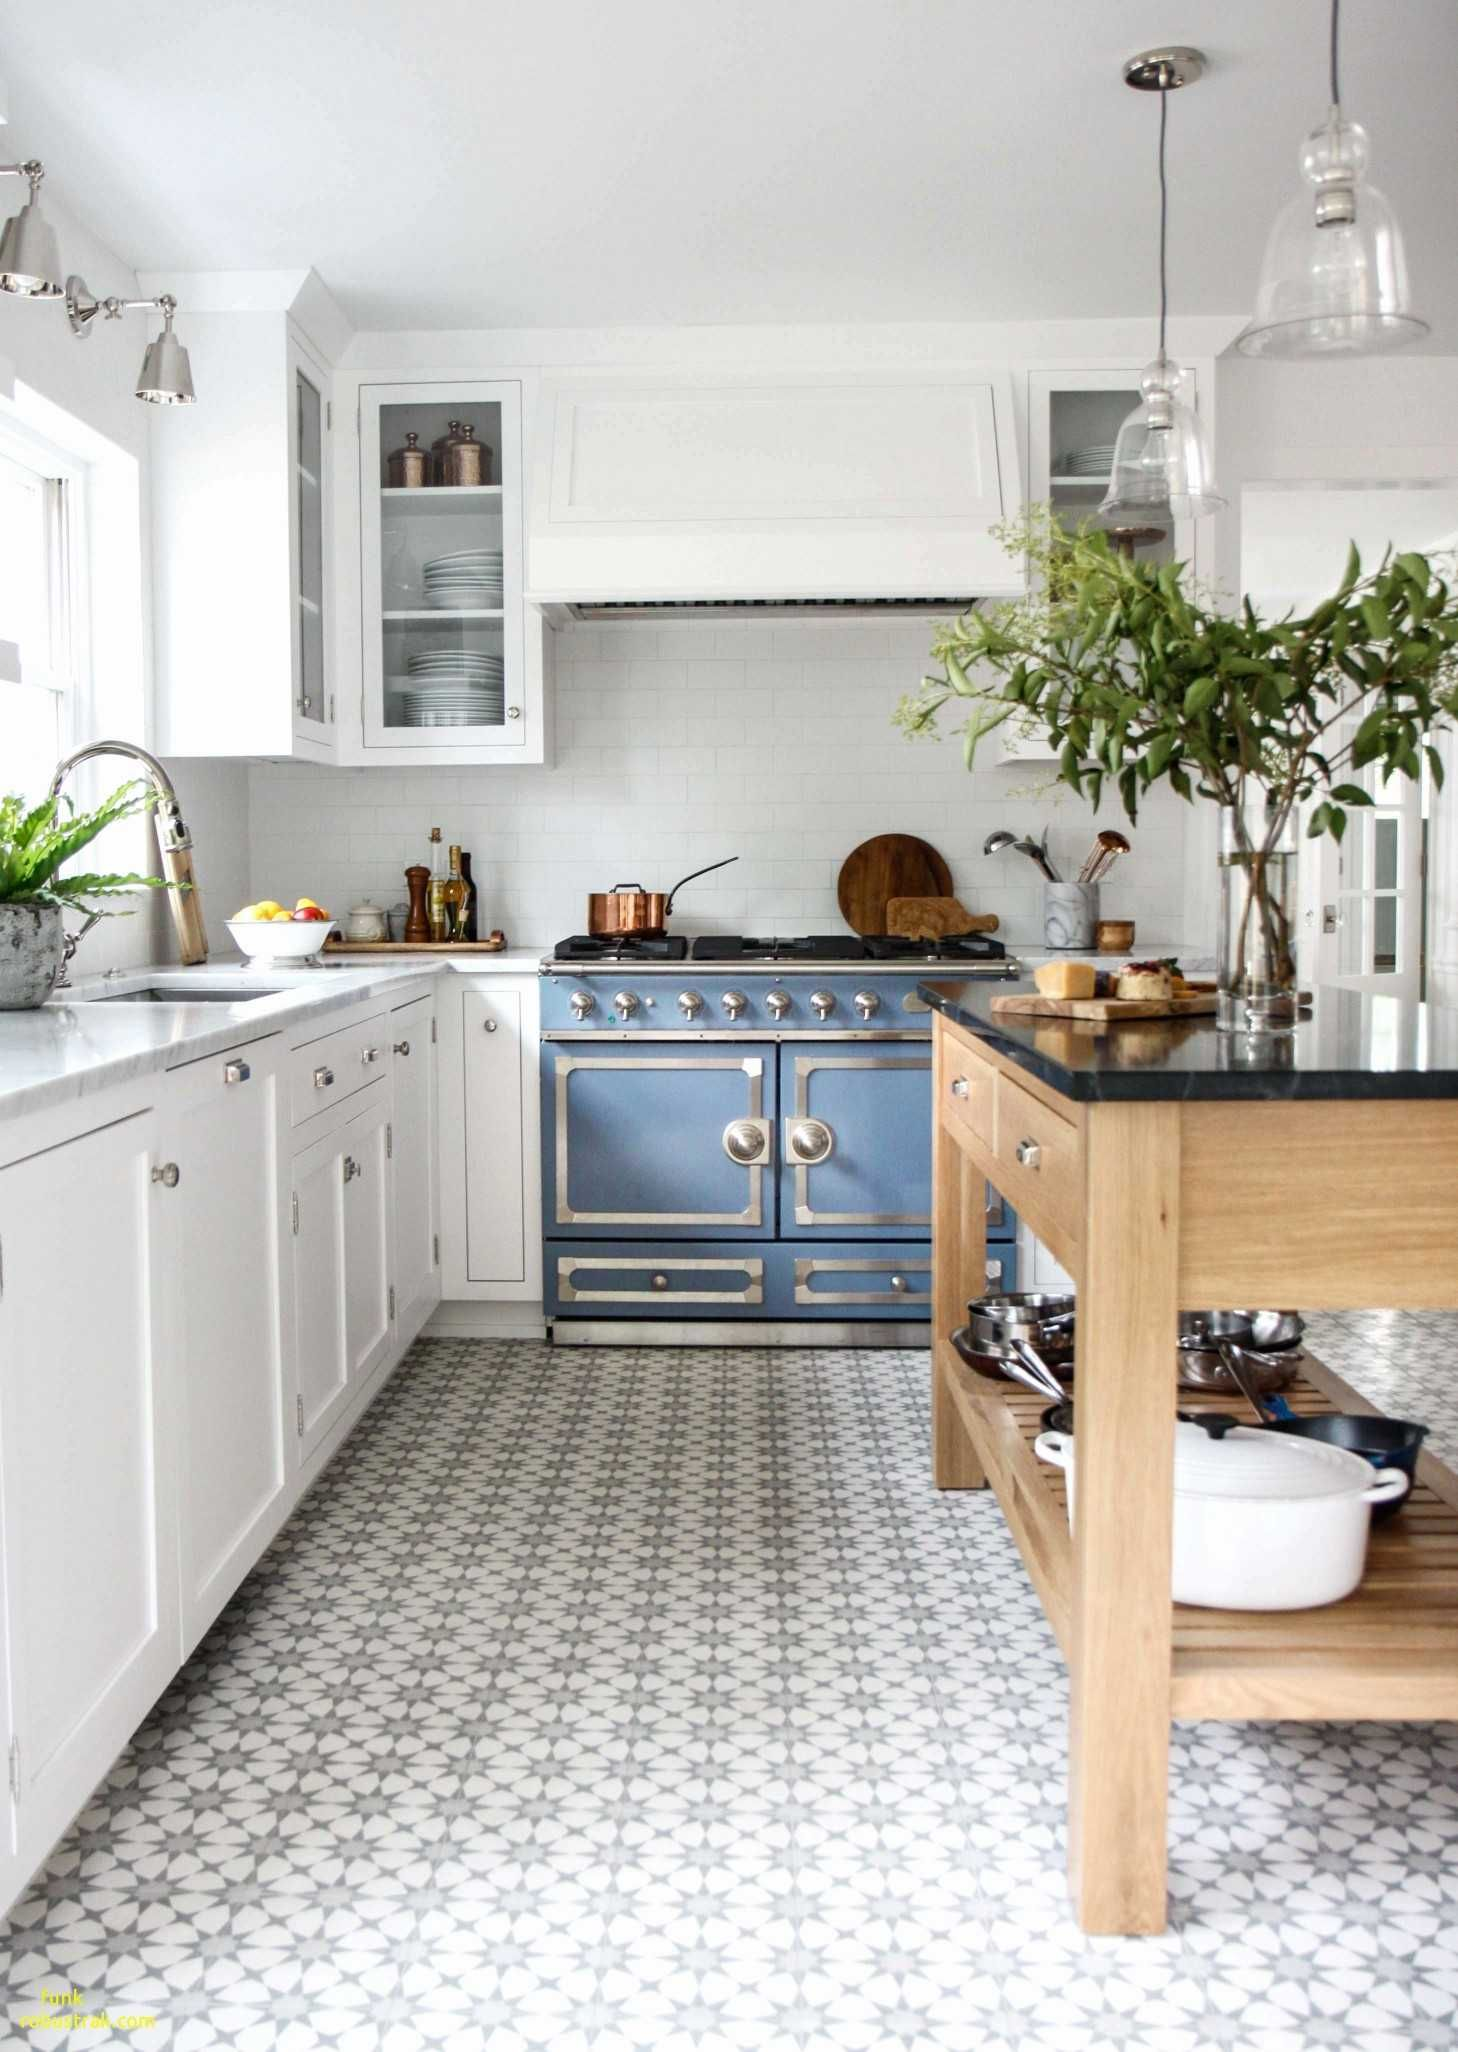 Scandinavian Farmhouse Kitchen Inspirational Scandinavian Farmhouse Kitchen White Farmhouse Kitchen Kitchen Design Small Kitchen Design Kitchen Renovation